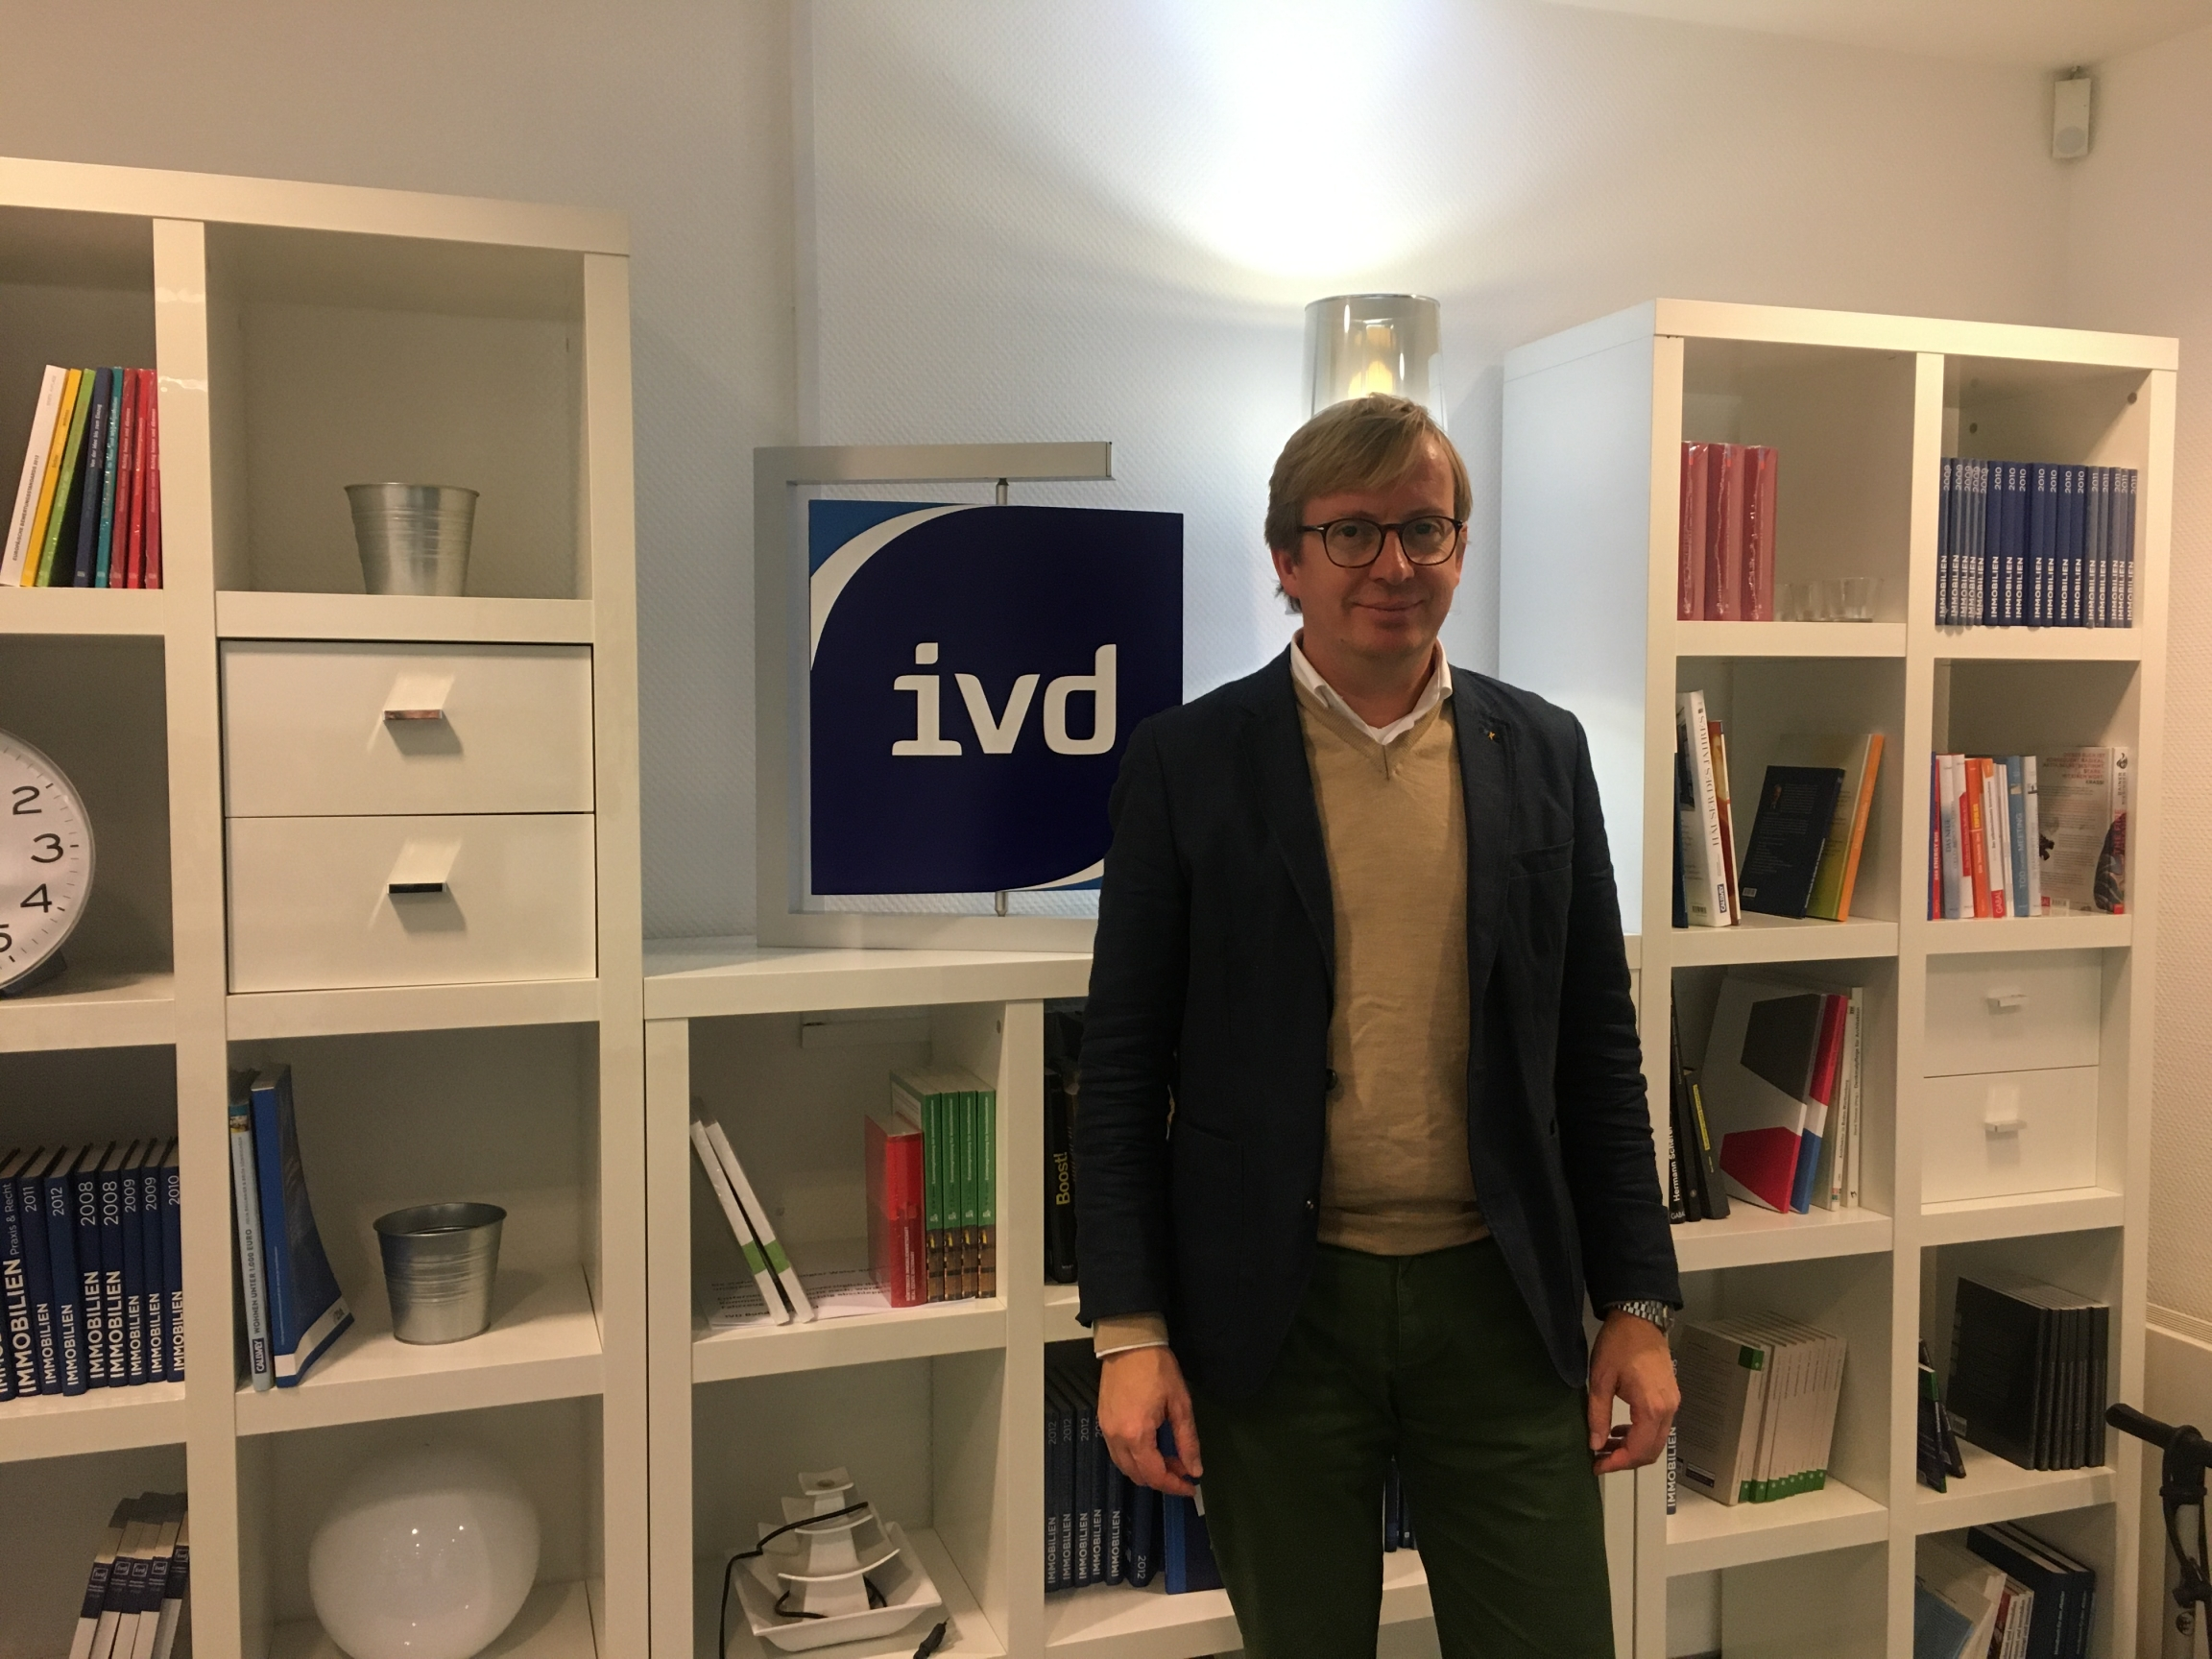 Christian Osthus is thevice director with IVD, which represents over 6,000 real estate agents and property managers in Germany. Osthus said he wasn't surprised by the recent German court ruling lifting a rent cap in Berlin, although he says he doesn't ag